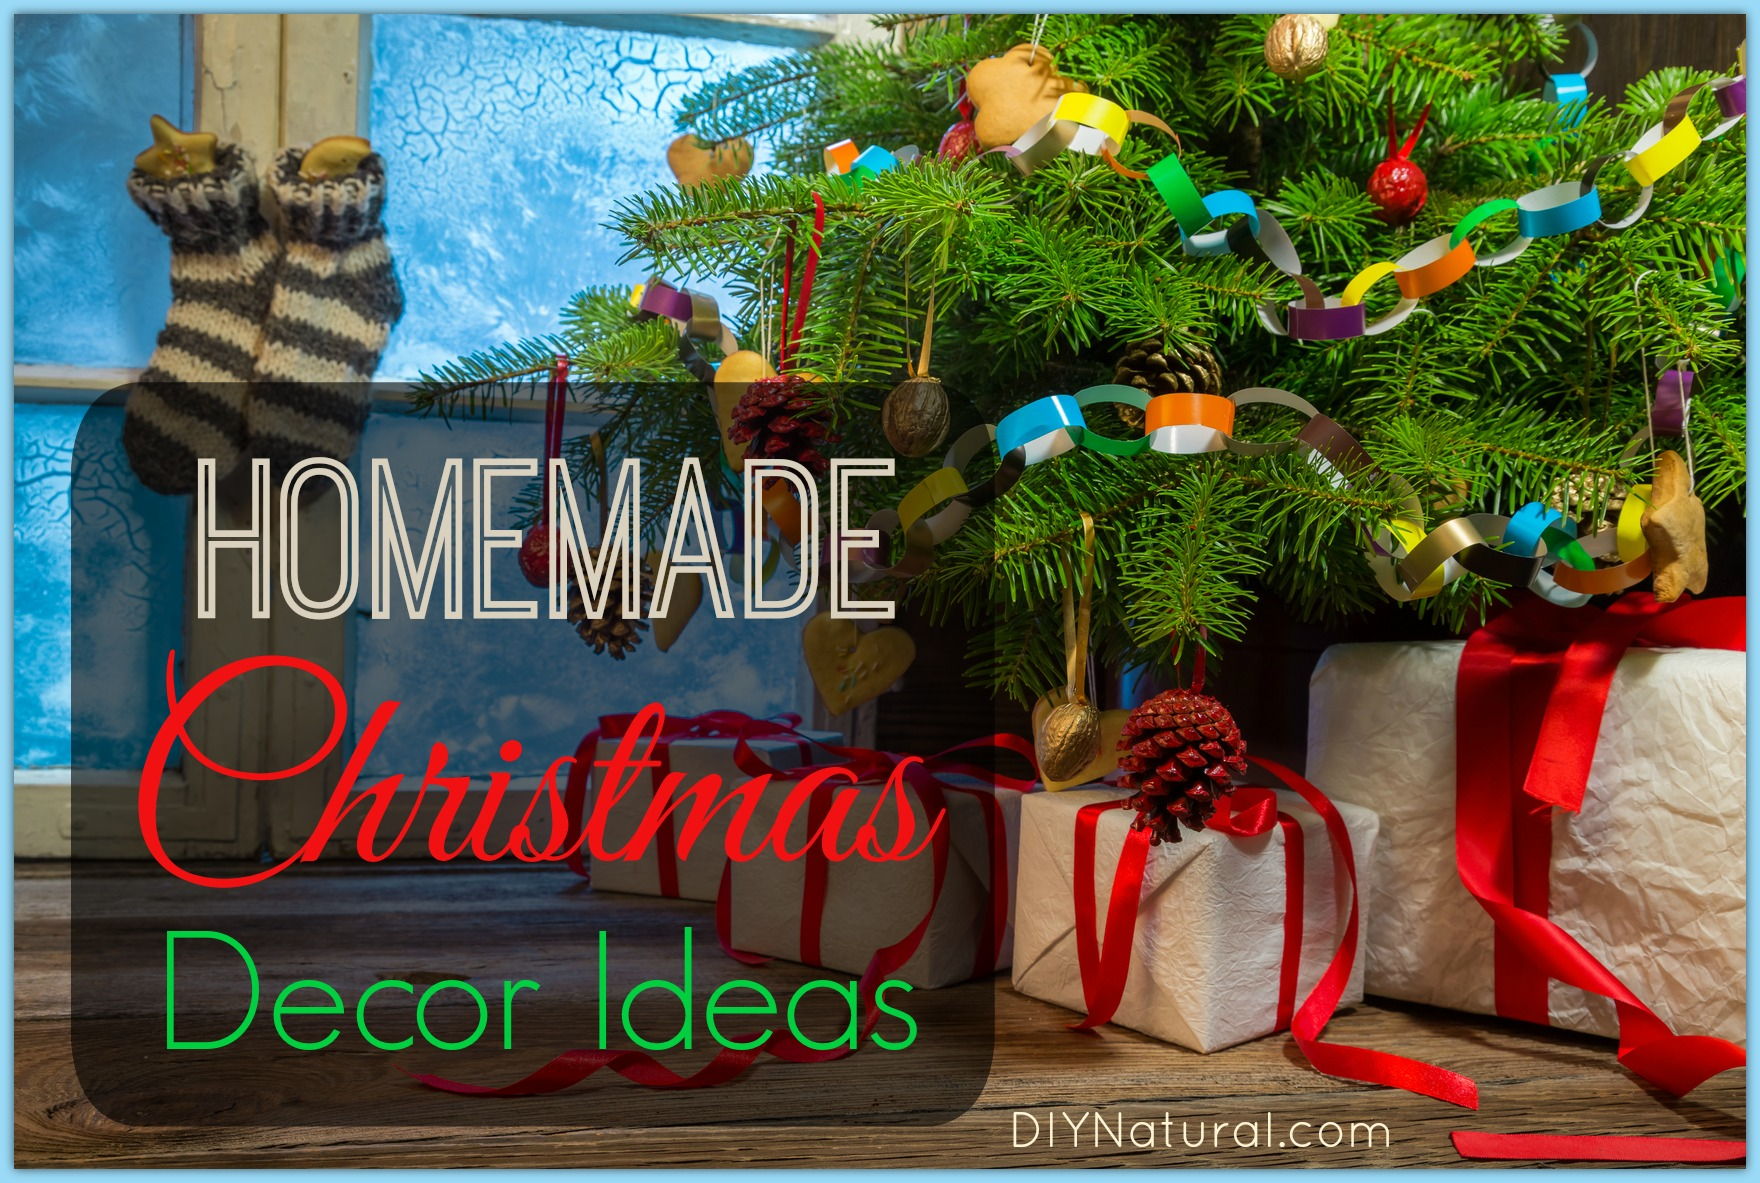 homemade christmas decorations to last the year thru - When To Start Decorating For Christmas